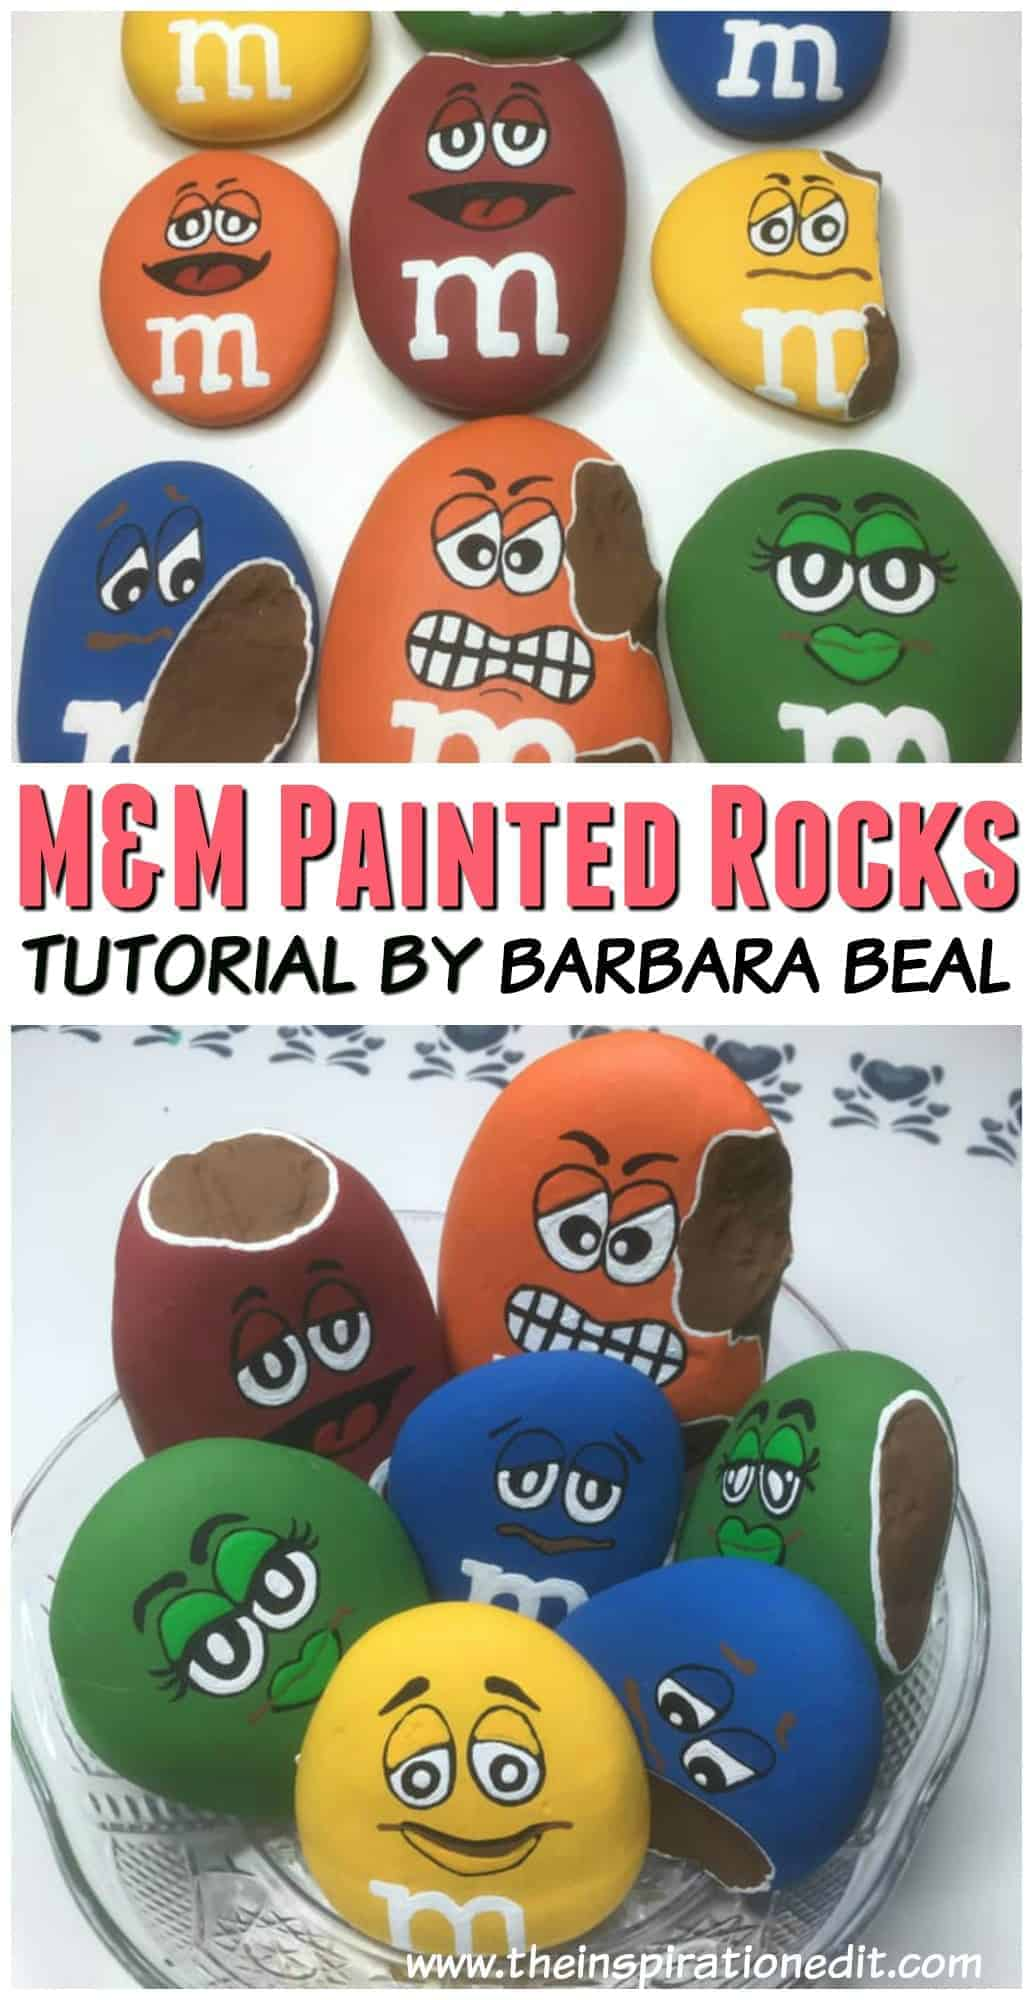 mNm Painted Rocks